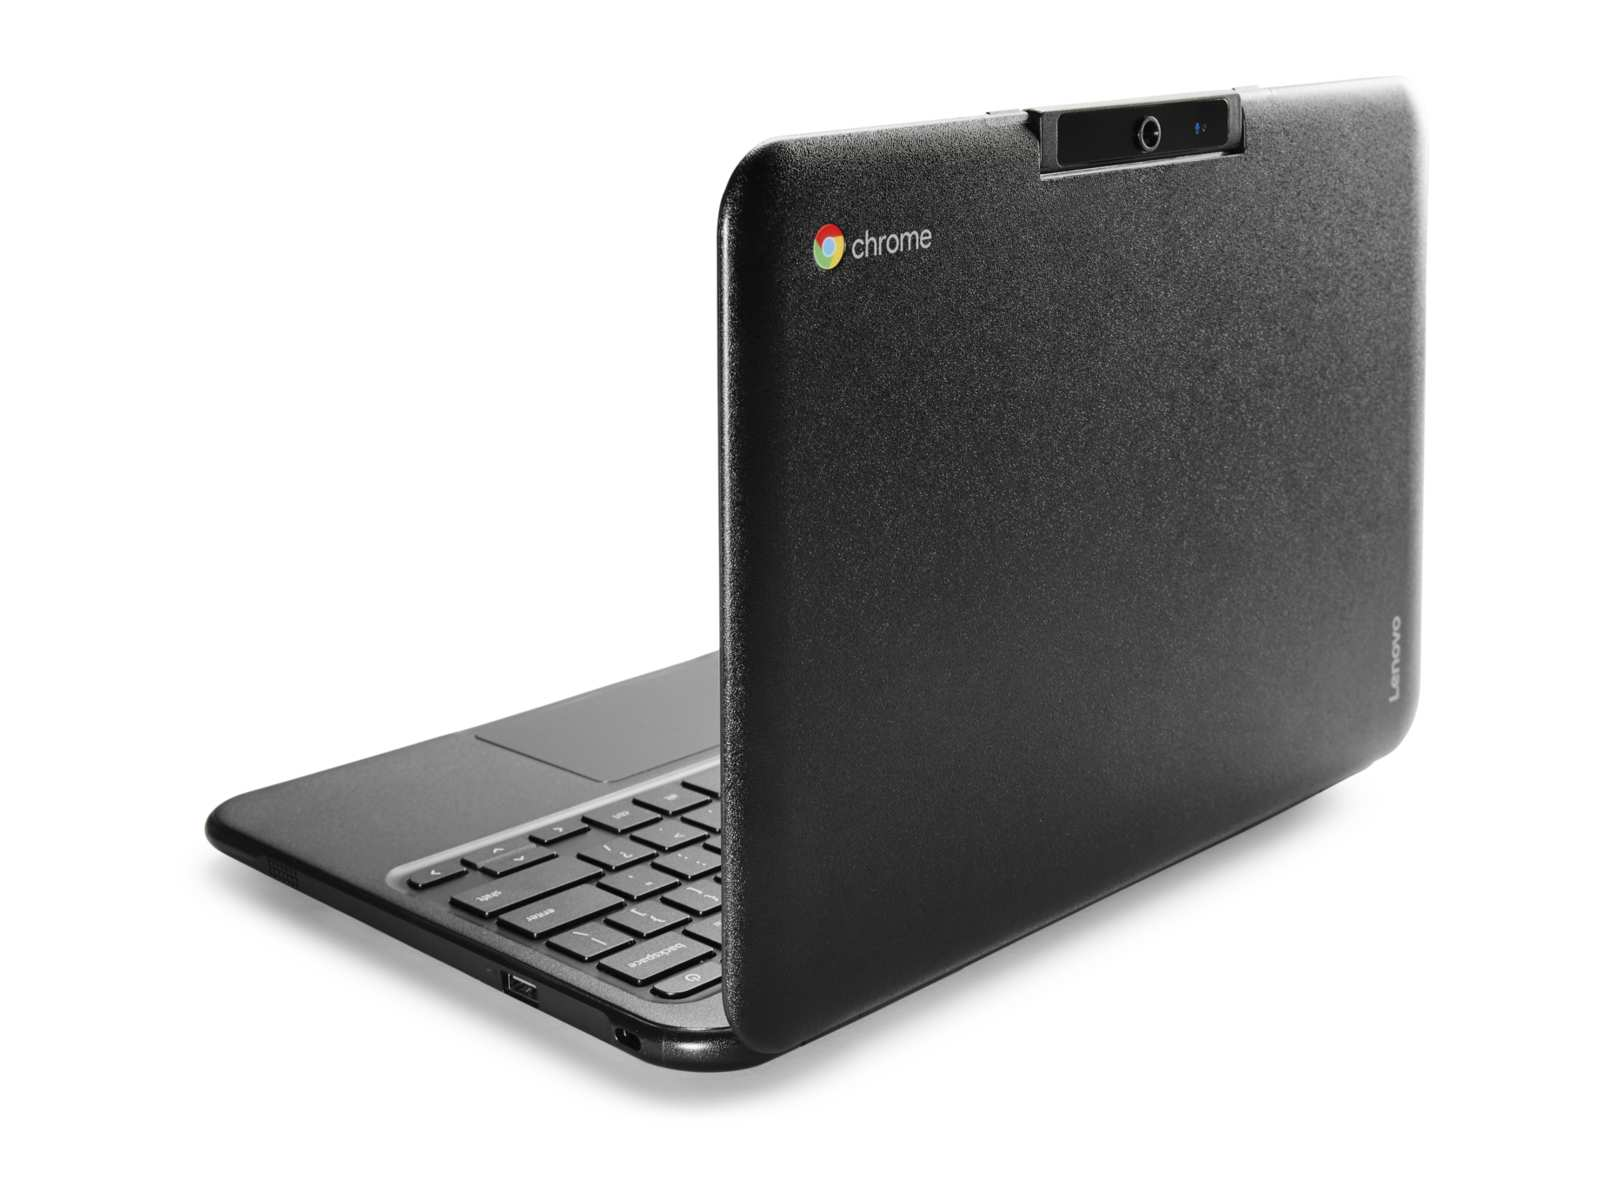 Lenovo N22 Chromebook - photo 2